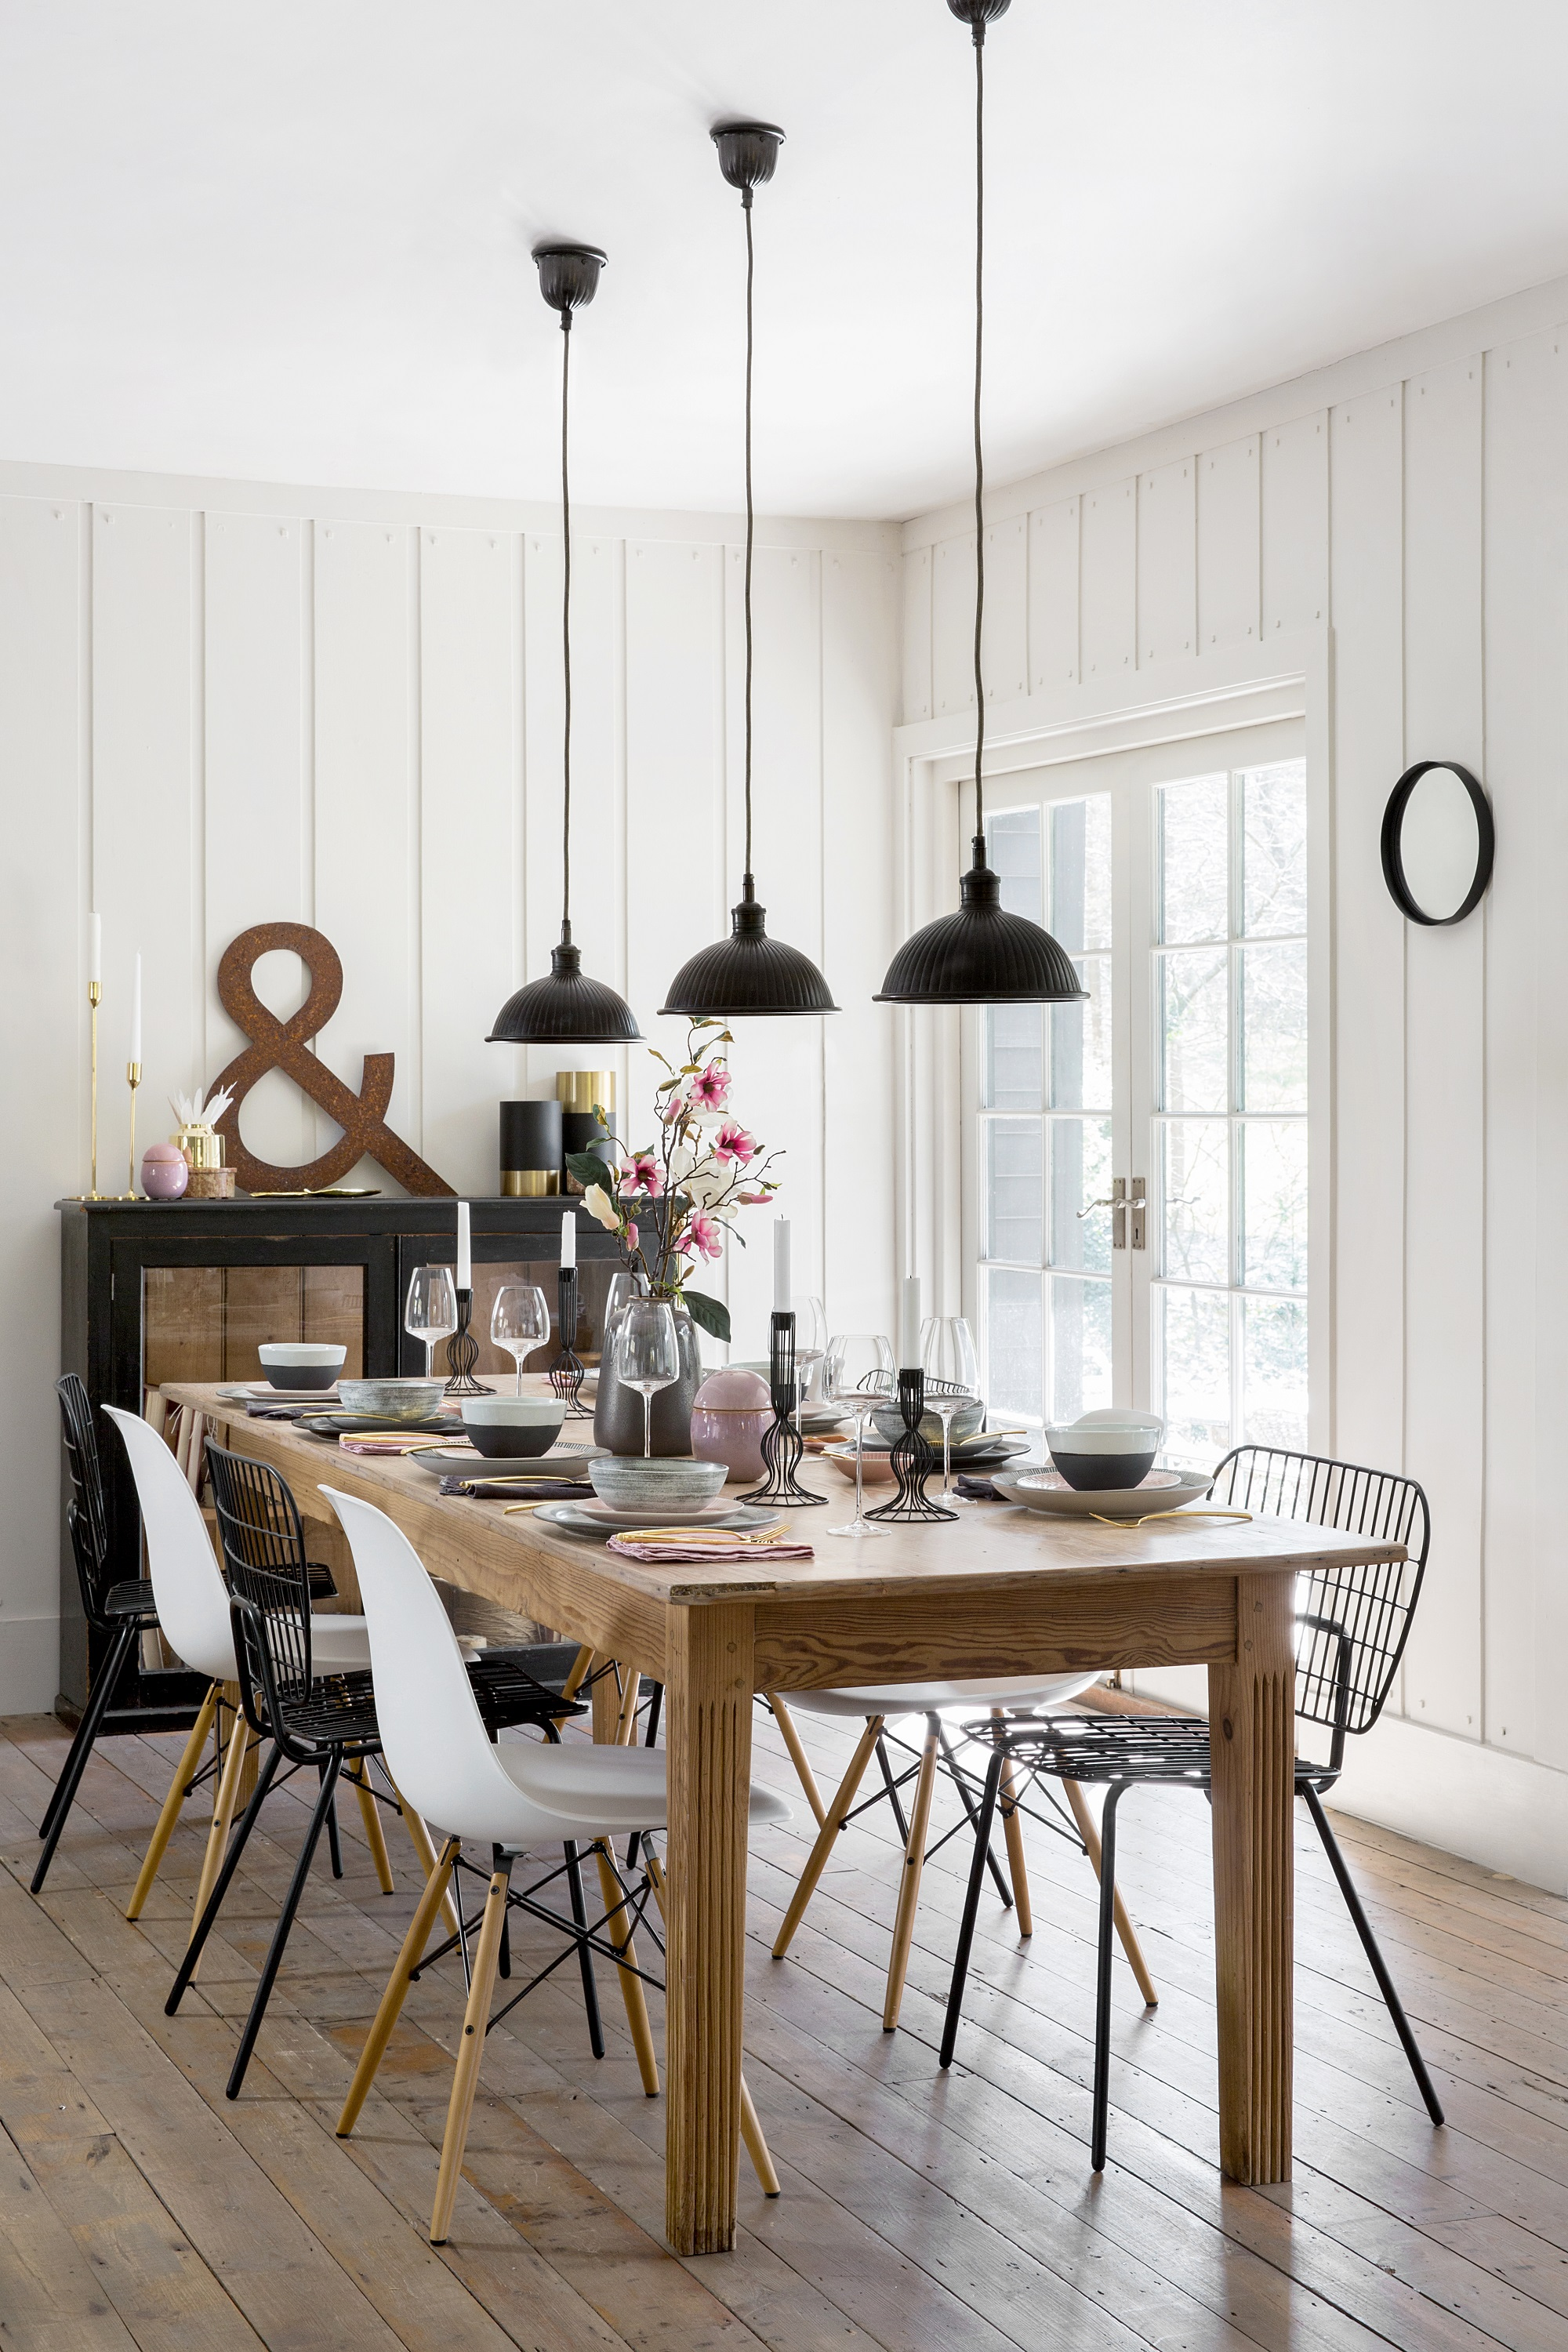 32 Stylish Dining Room Ideas To Impress Your Dinner Guests ... on Dining Room Curtains Ideas  id=72253